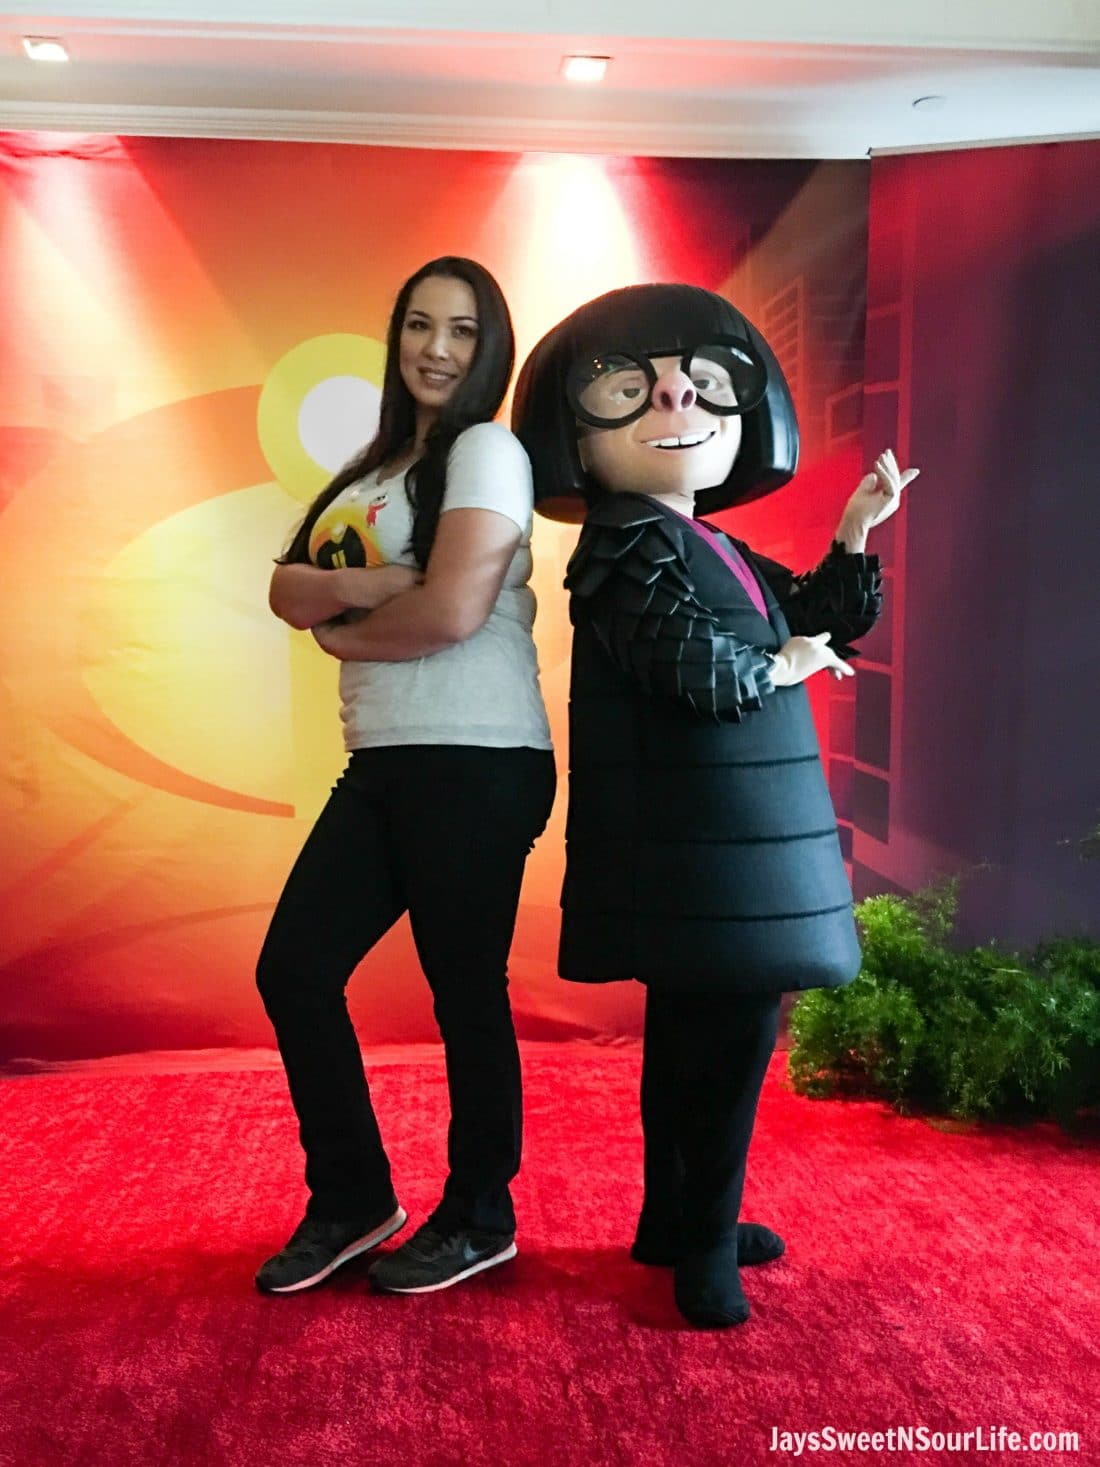 Filipino Woman Posing with Edna Mode from Incredibles 2 Press Junnket. The Incredibles 2 film will be in theaters everywhere June 15th.